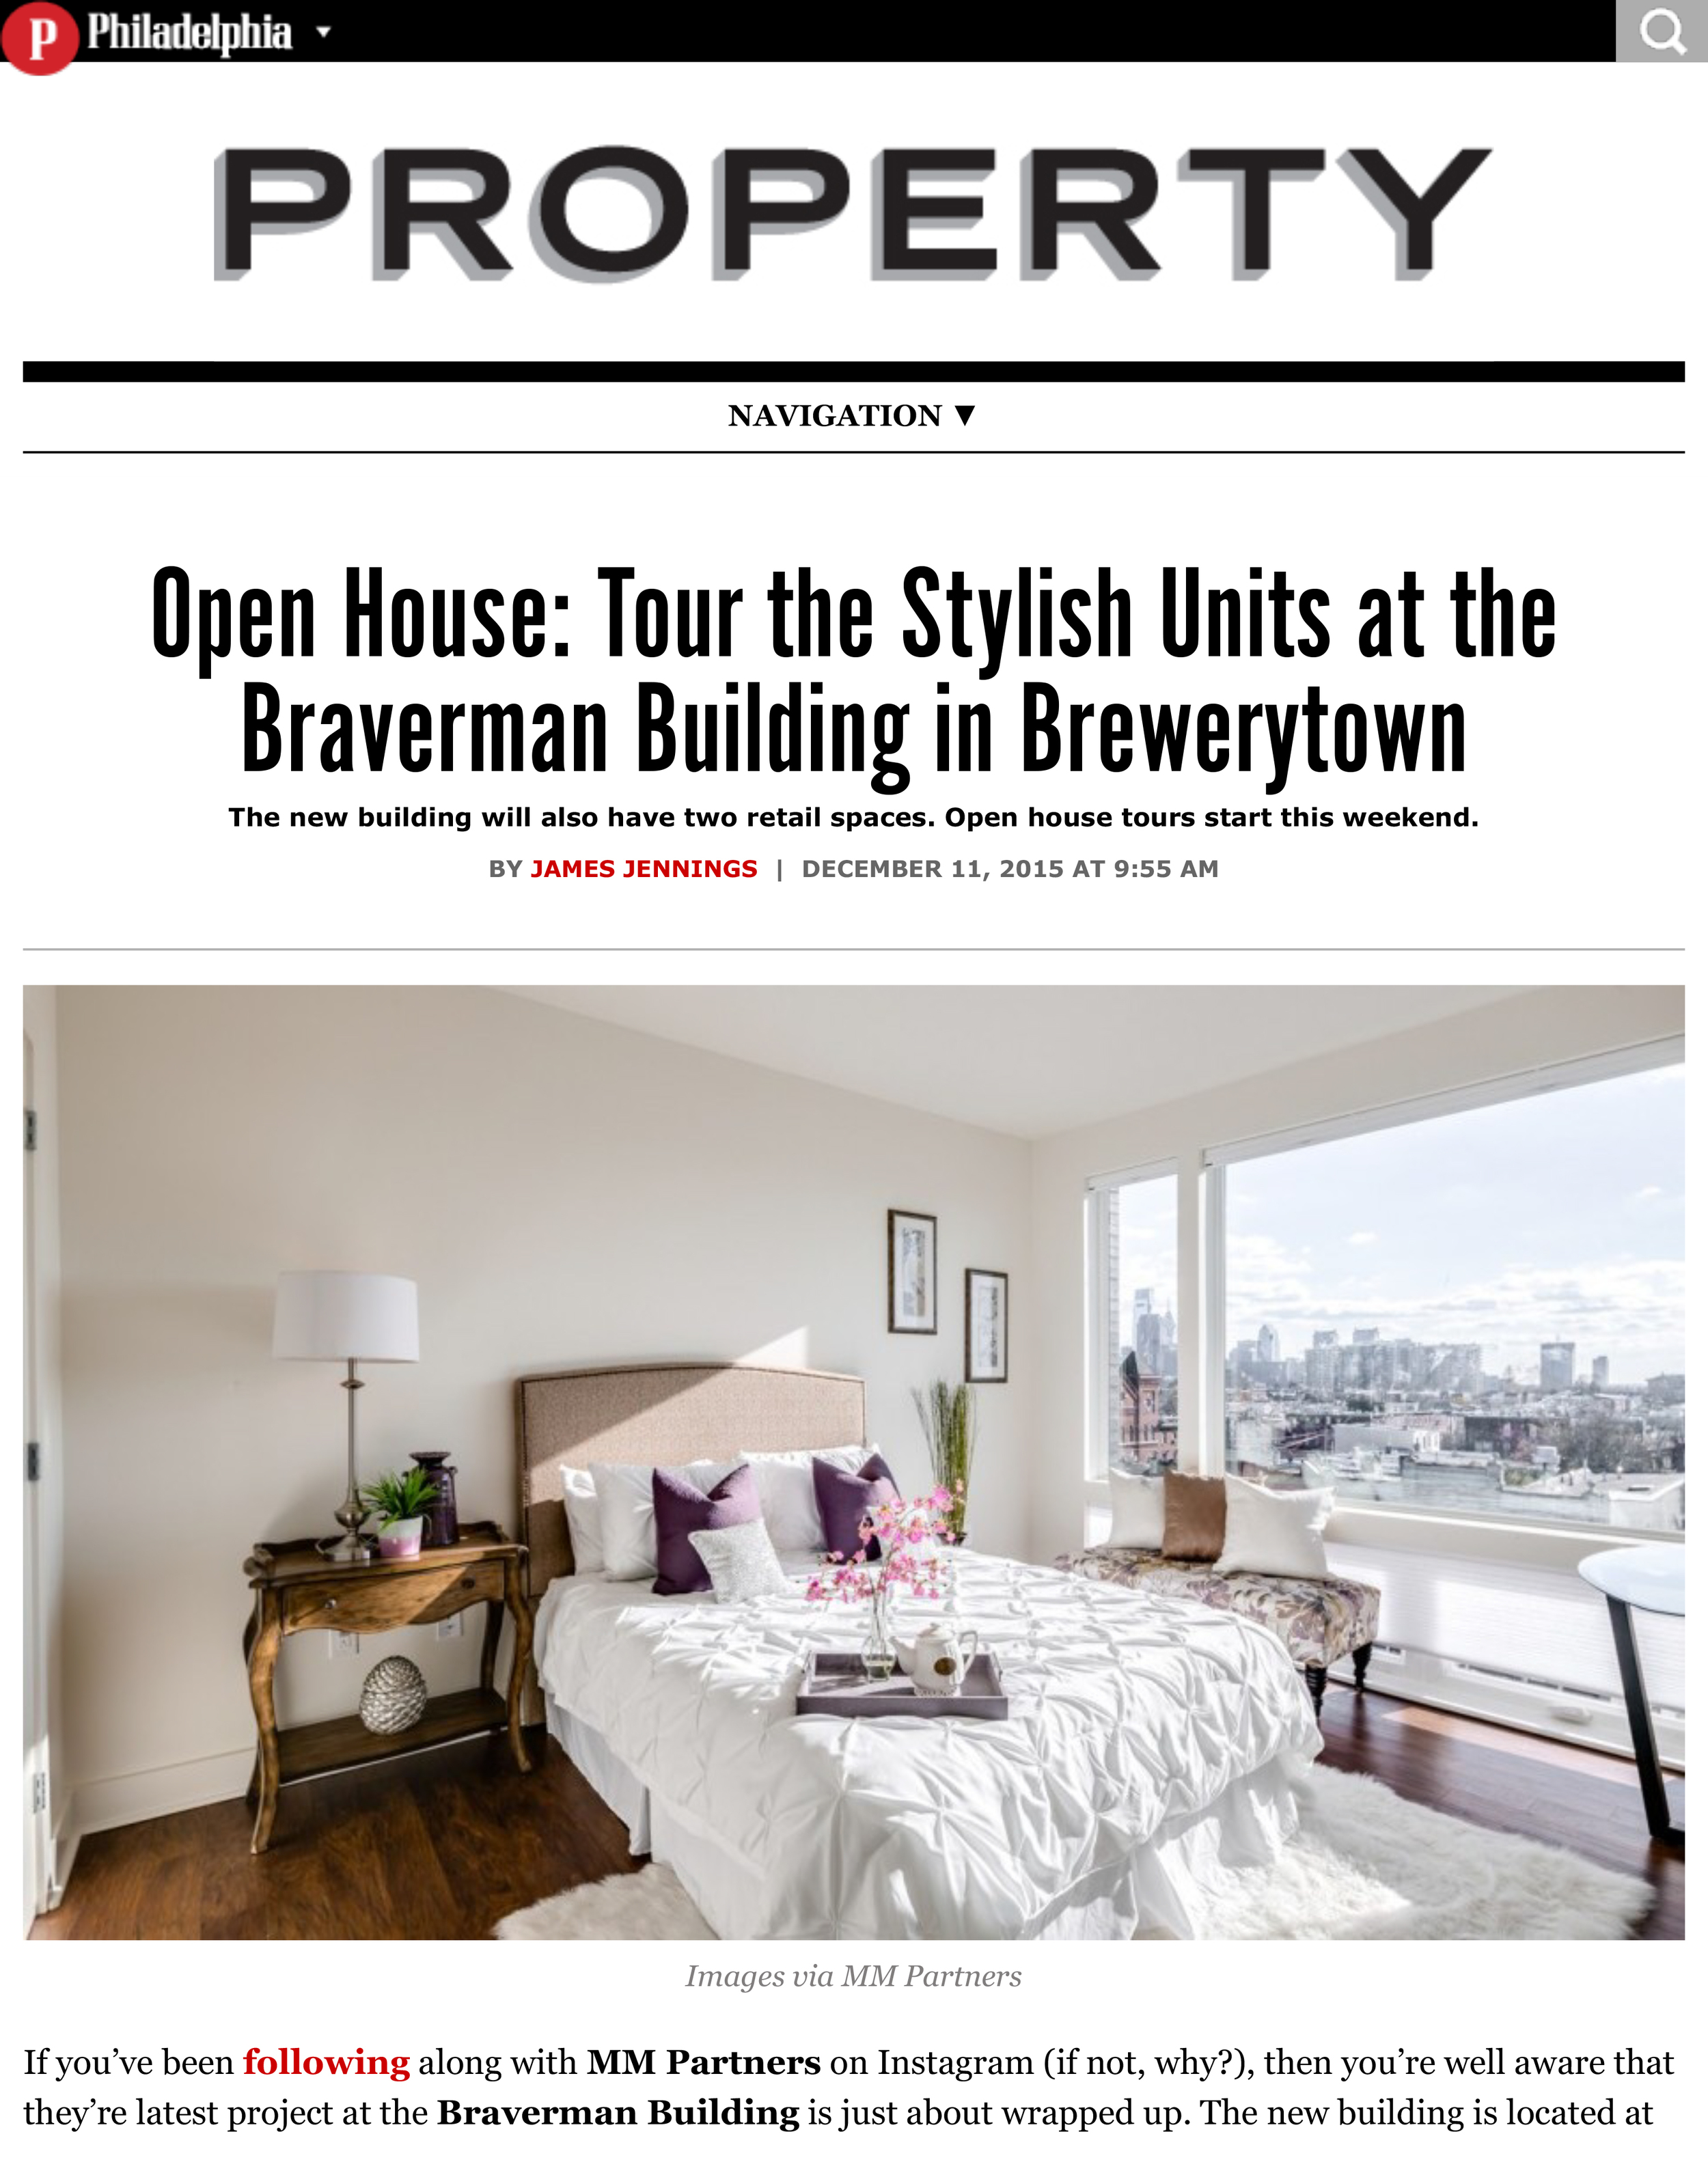 Tour the Stylish Units at the Braverman Building in Brewerytown - Property-1.jpg